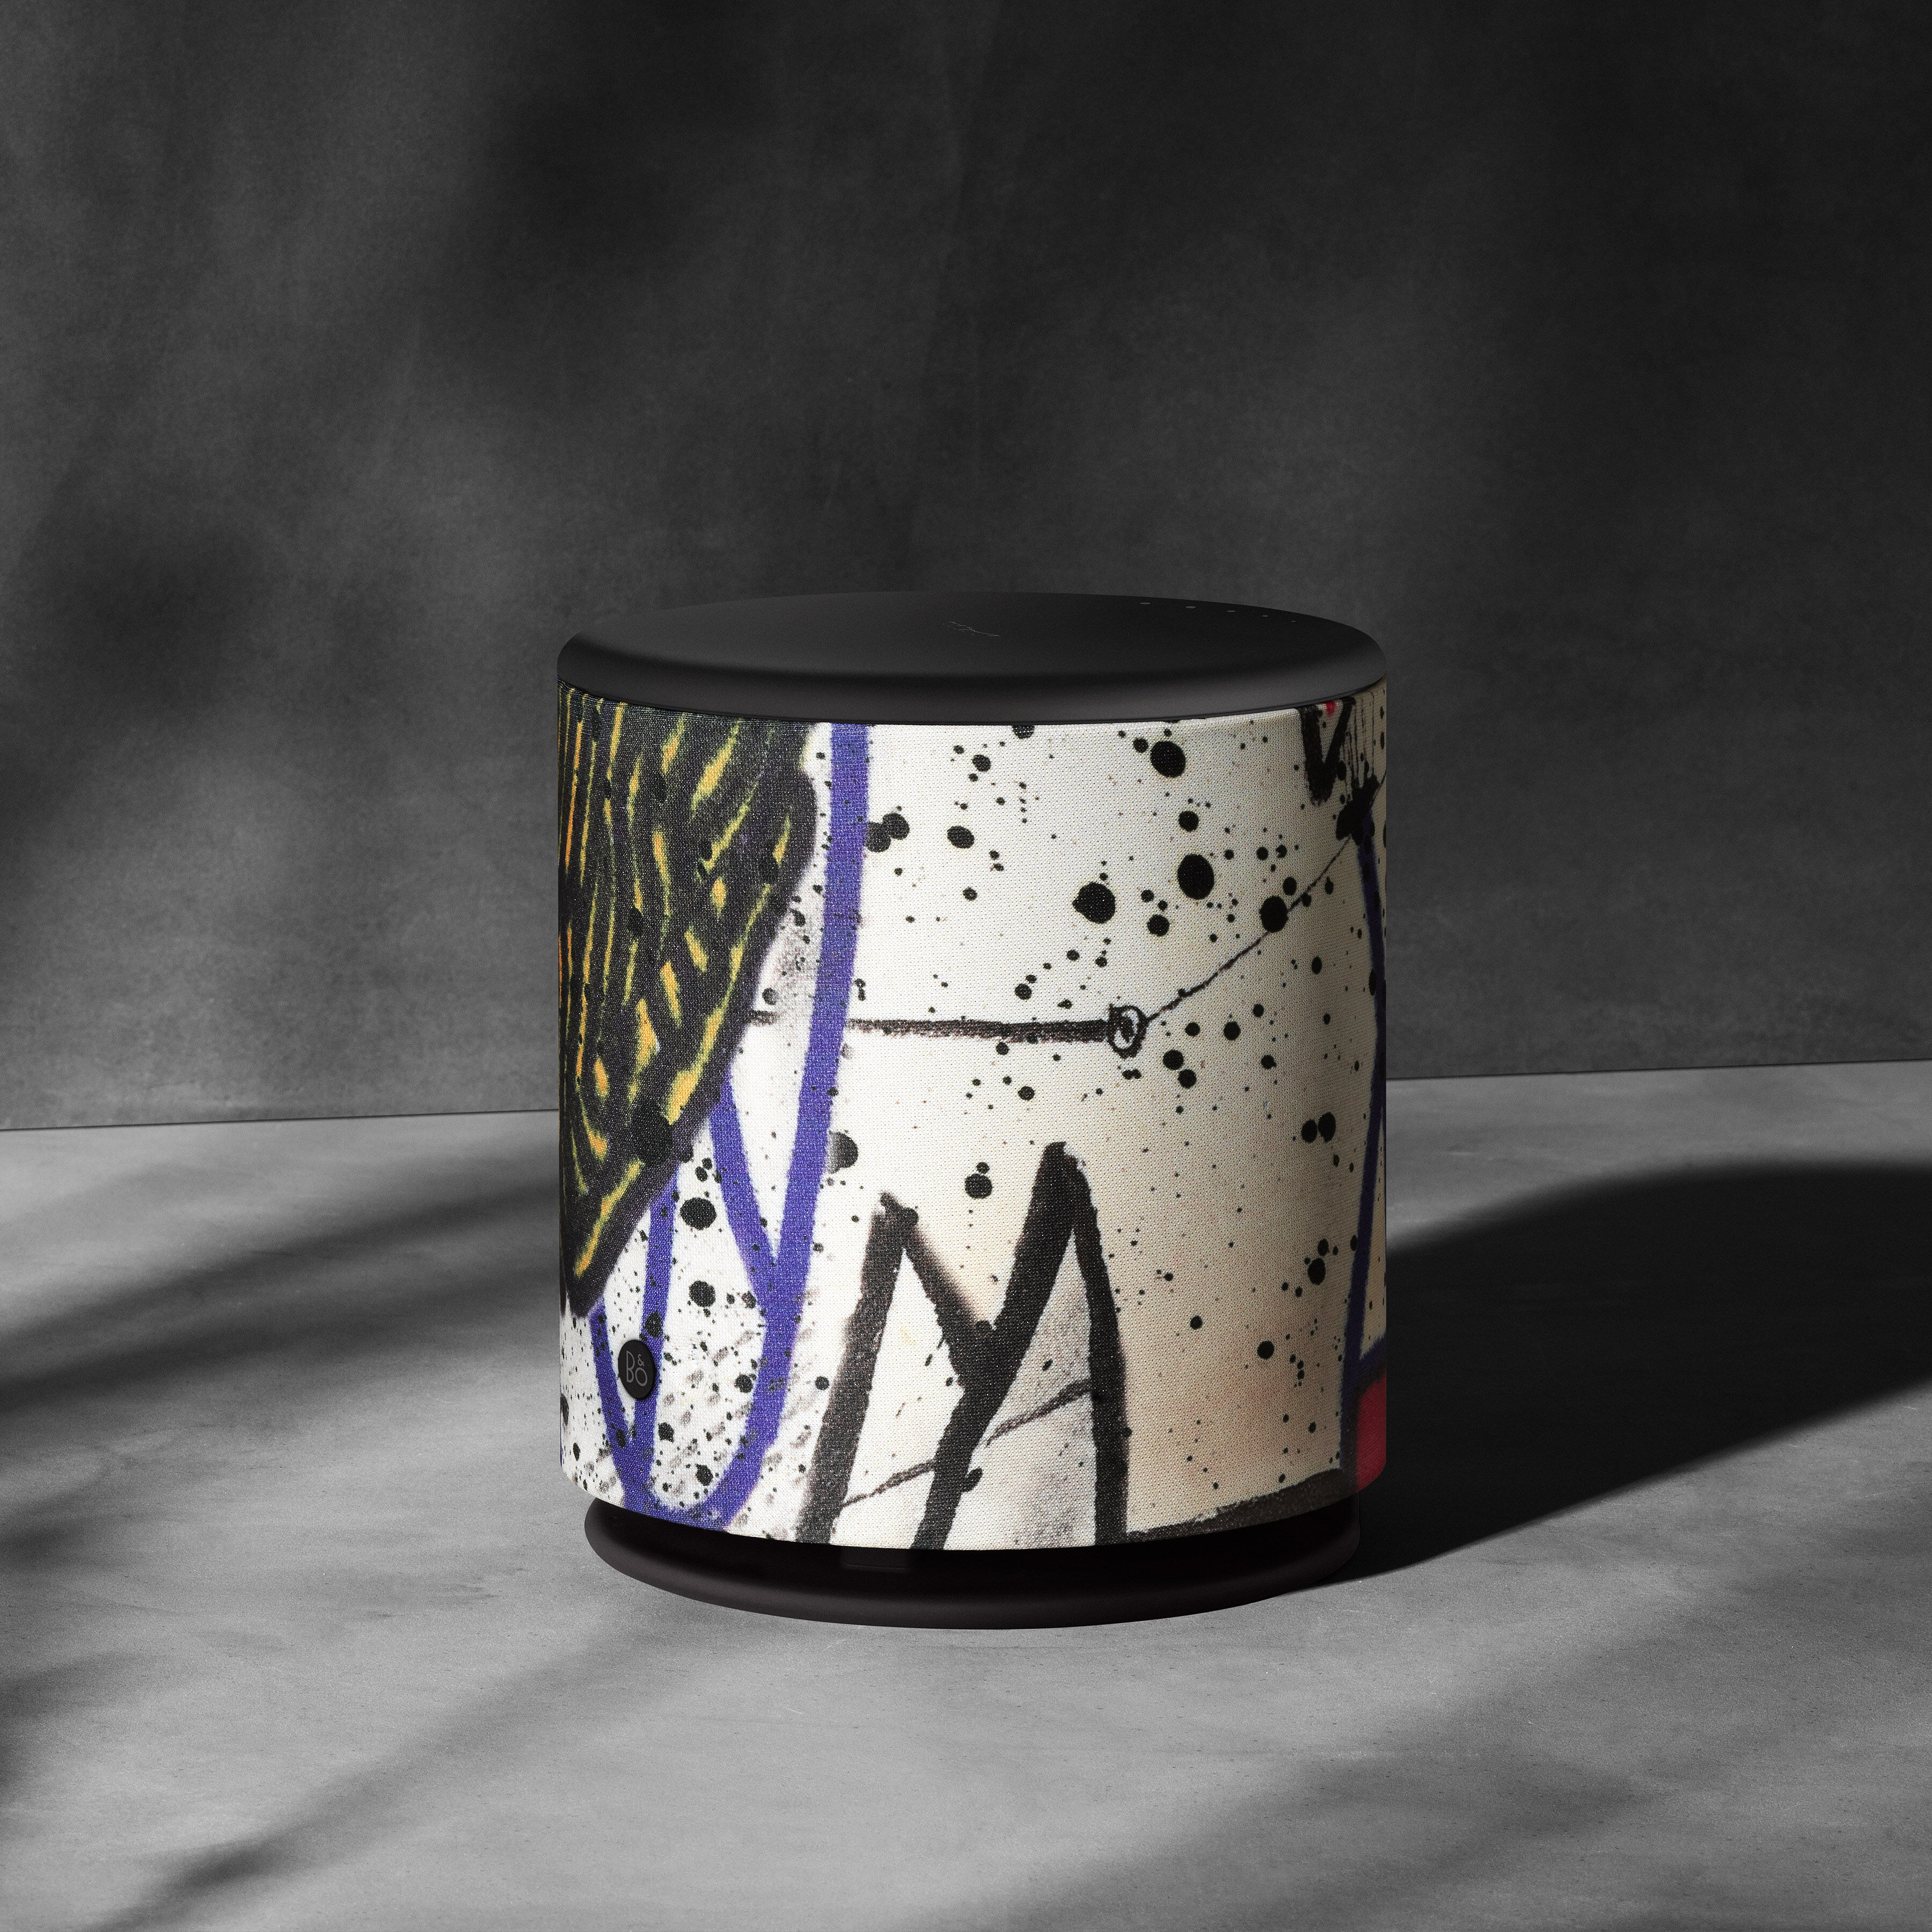 Bang And Olufsen Paris Bang Olufsen Beoplay M5 Speaker Featuring Artwork By David Lynch